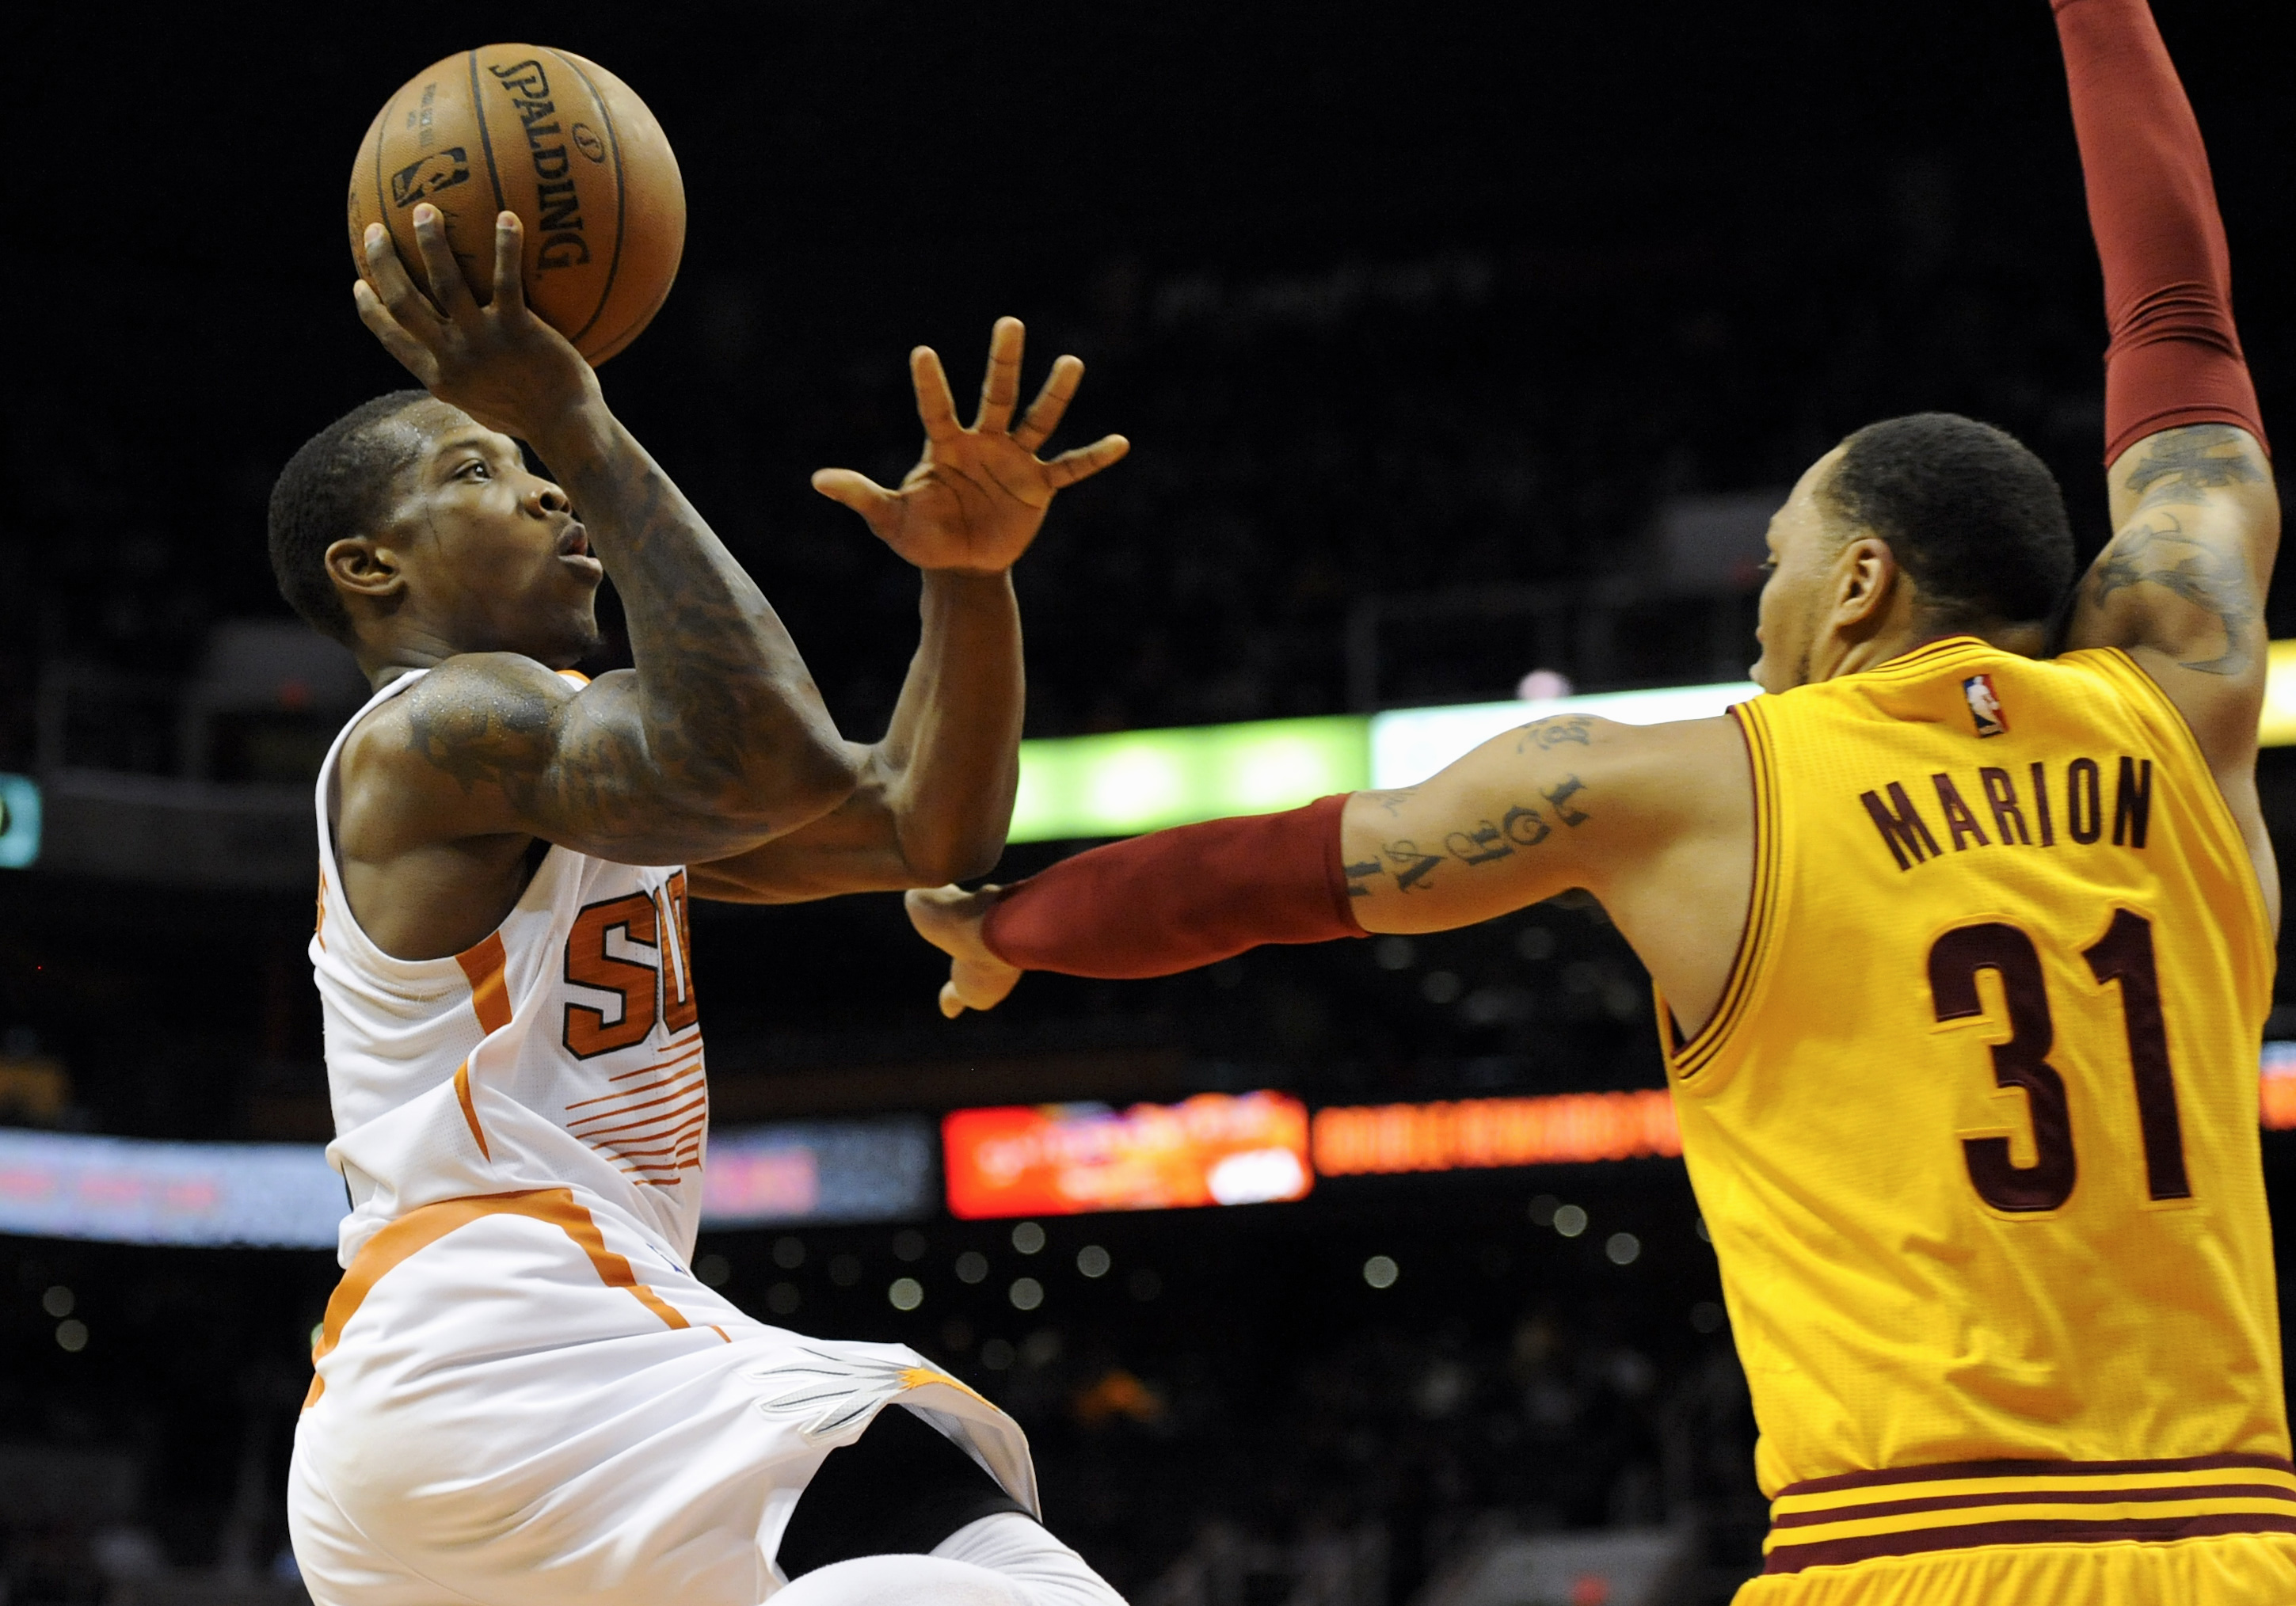 8329619-nba-cleveland-cavaliers-at-phoenix-suns